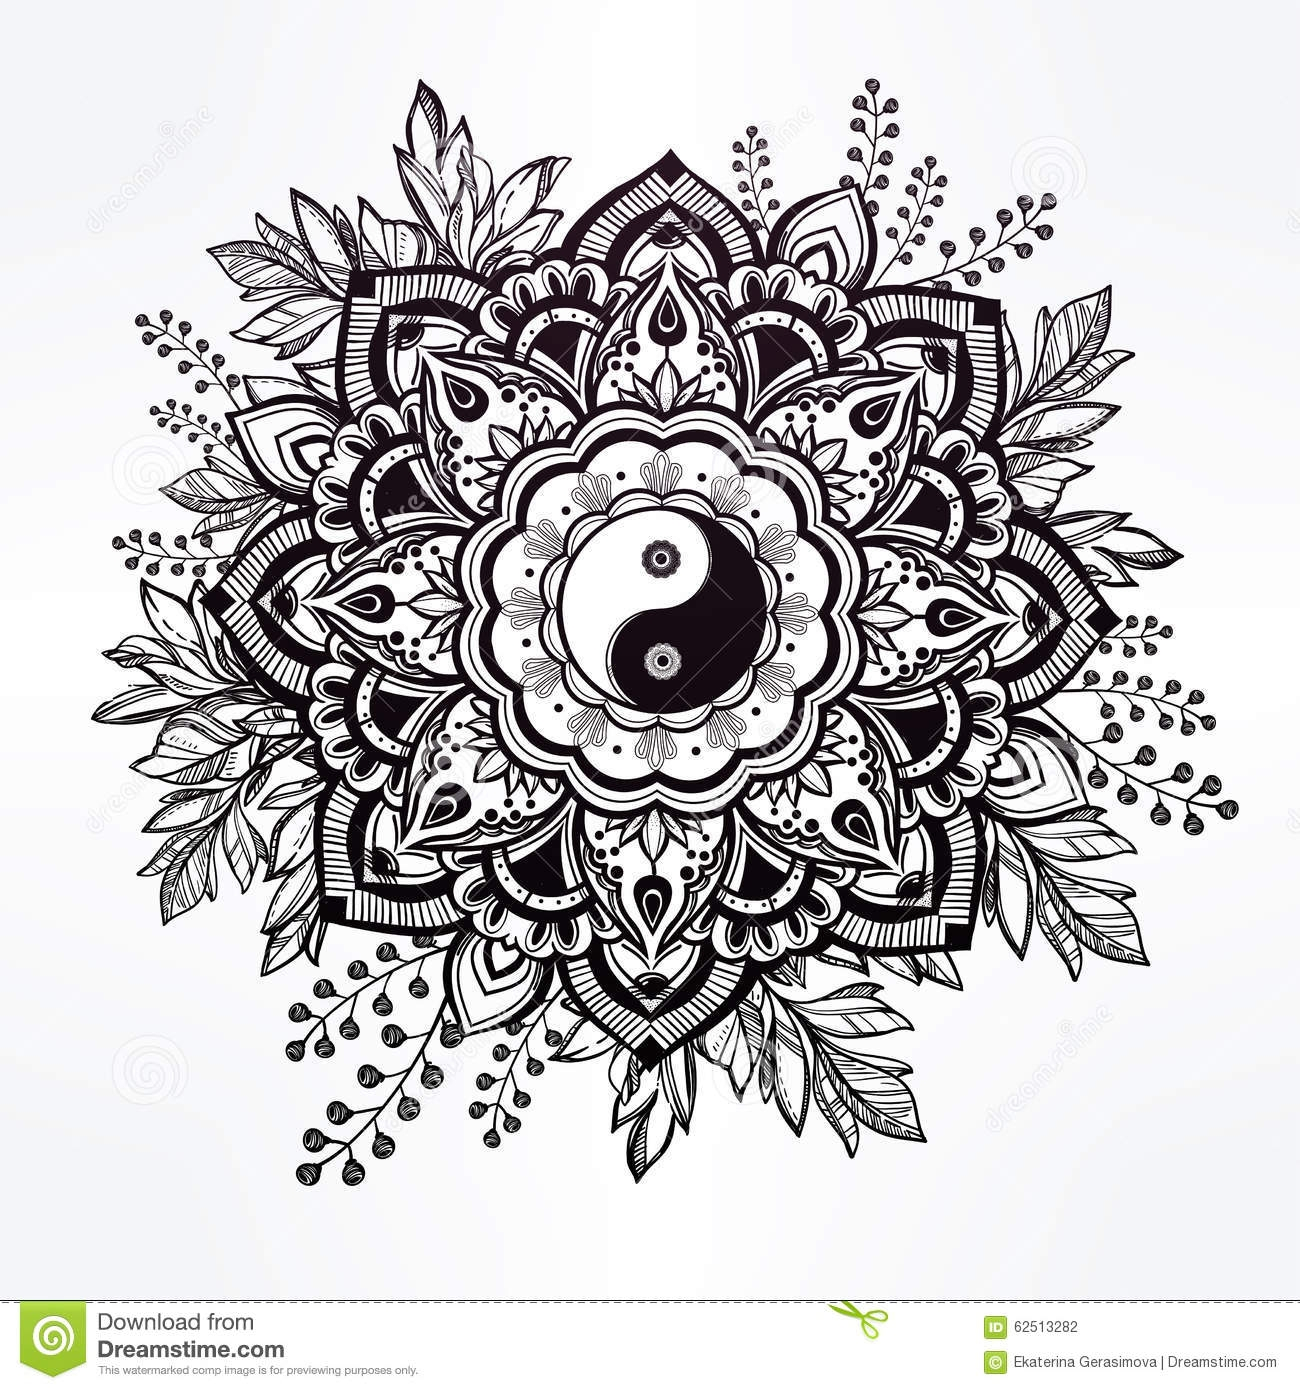 anxiety coloring pages - stock illustration ornate flower yin yang symbol hand drawn crown leaves tao isolated vector illustration invitation element image